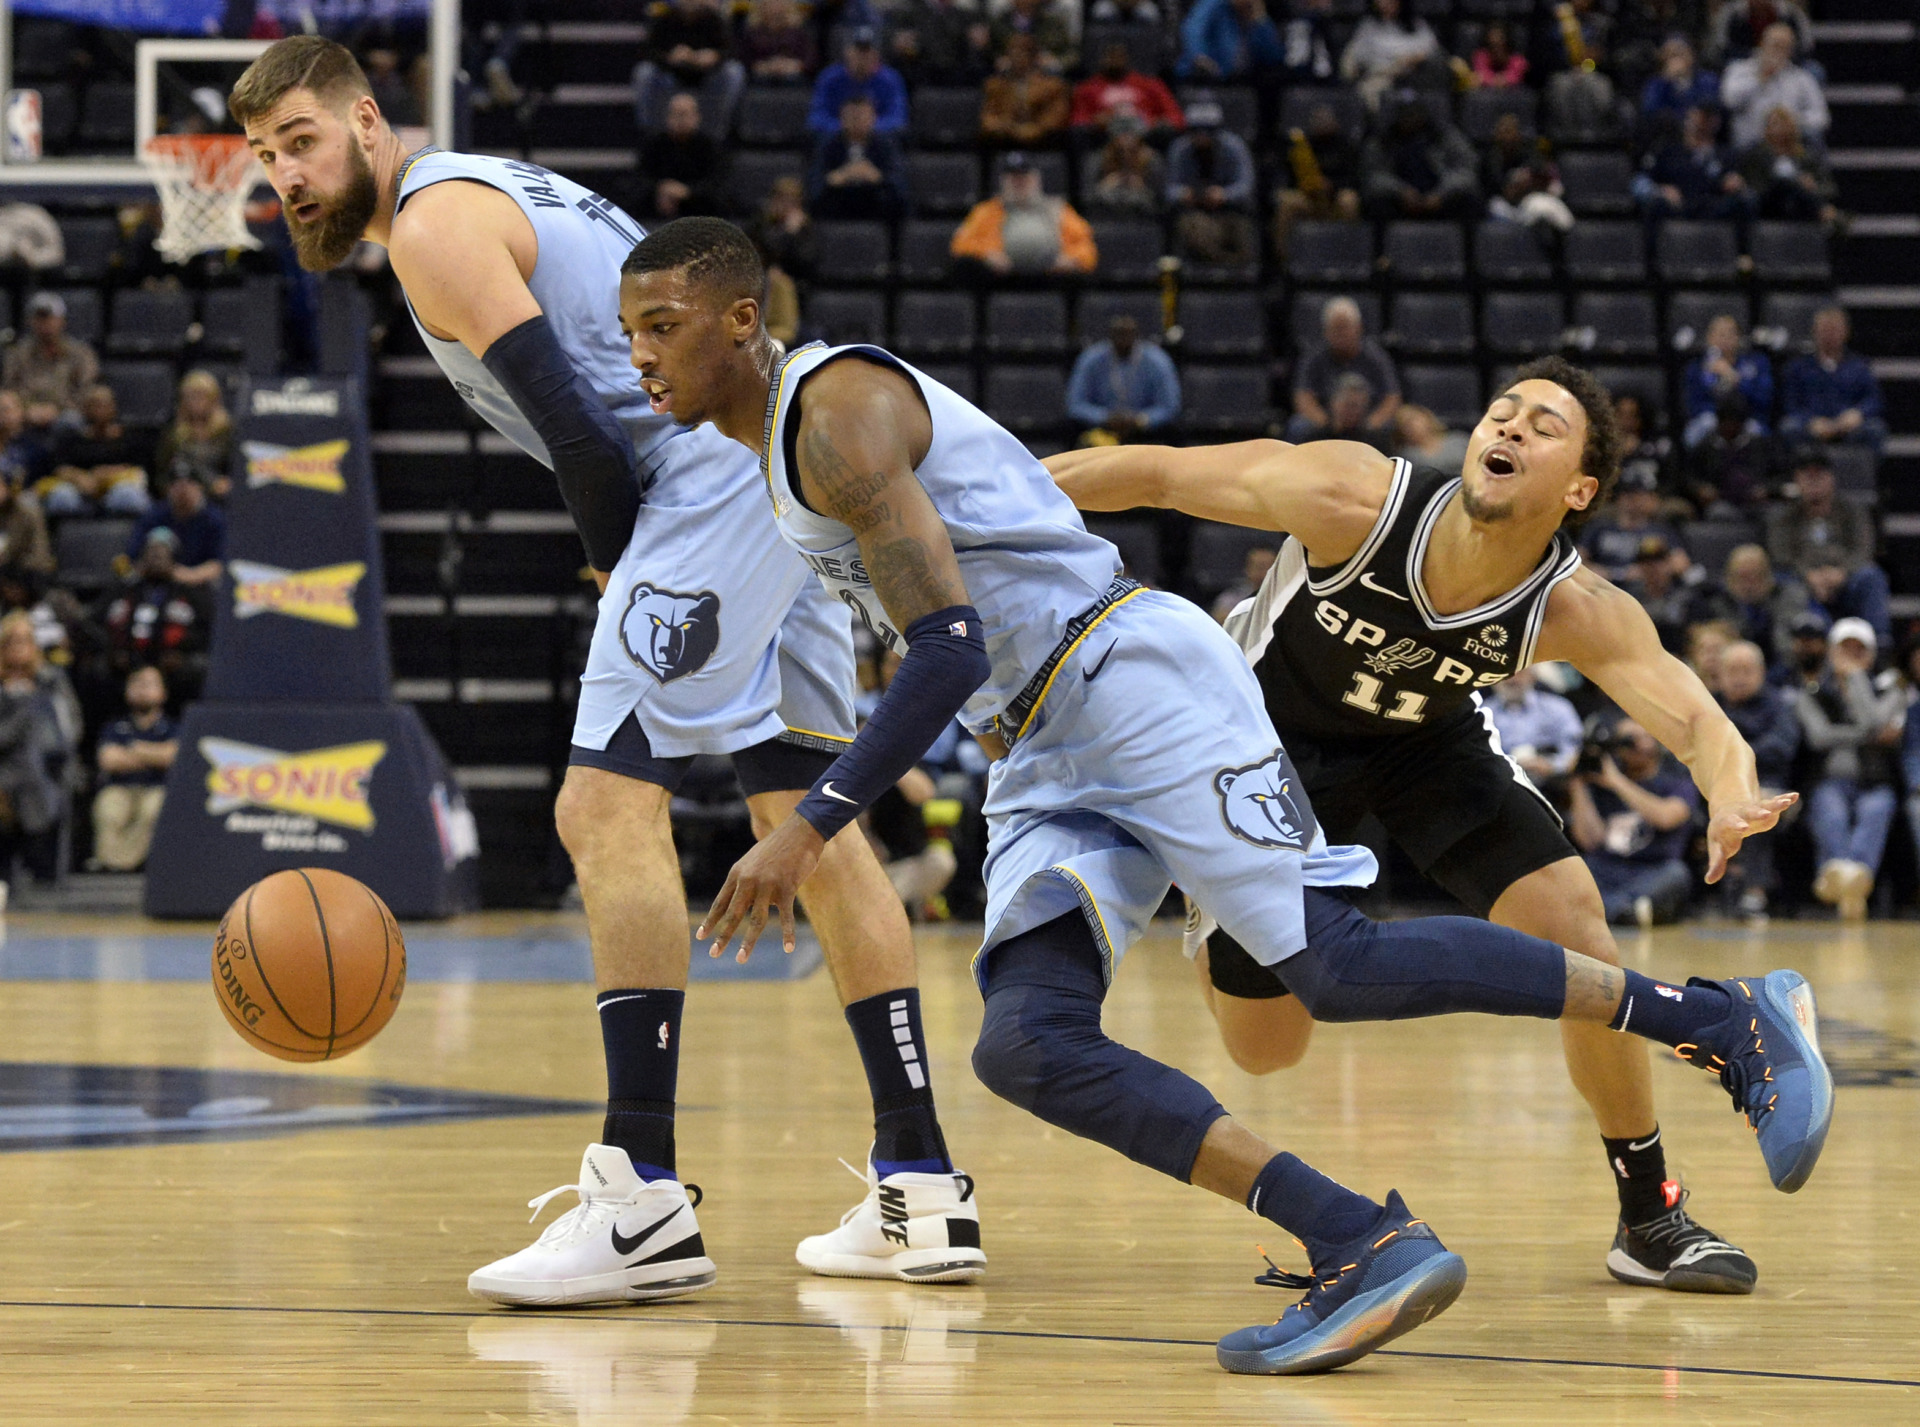 <span><strong>Memphis Grizzlies guard Delon Wright (2) drives around San Antonio Spurs guard Bryn Forbes (11) with help from Grizzlies center Jonas Valanciunas during the first half of an NBA basketball game Tuesday, Feb. 12, 2019, in Memphis, Tenn.</strong> (AP Photo/Brandon Dill)</span>